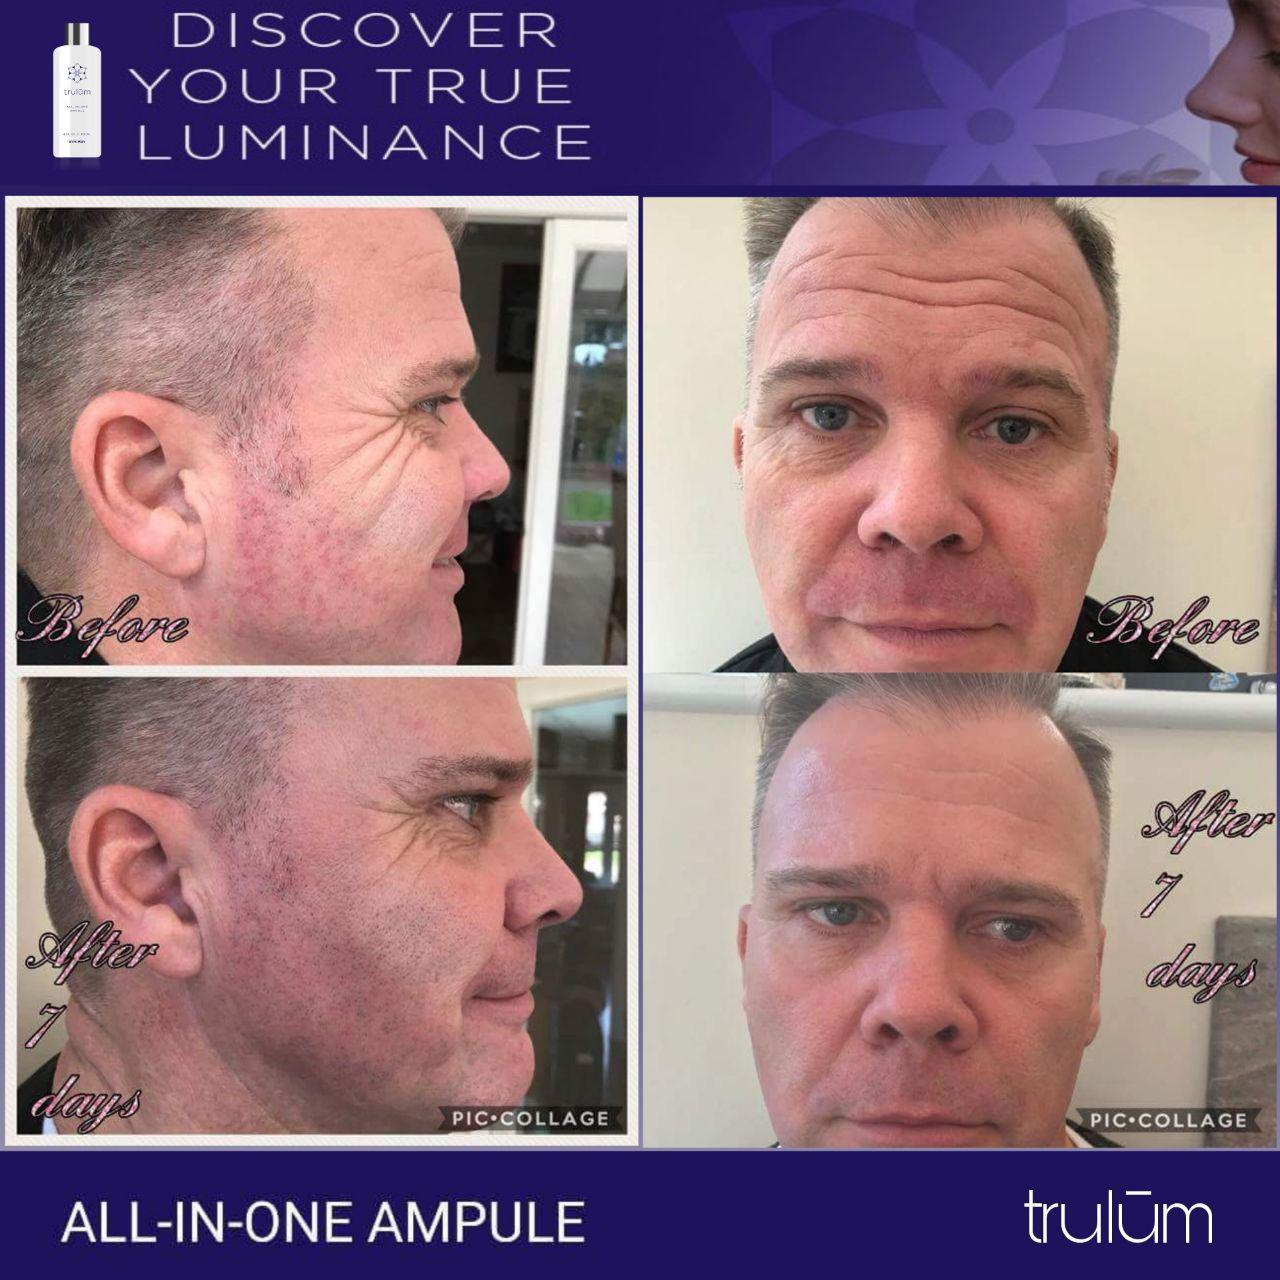 Jual Trulum All In One Ampoule Di Silau Laut, Asahan WA: 08112338376